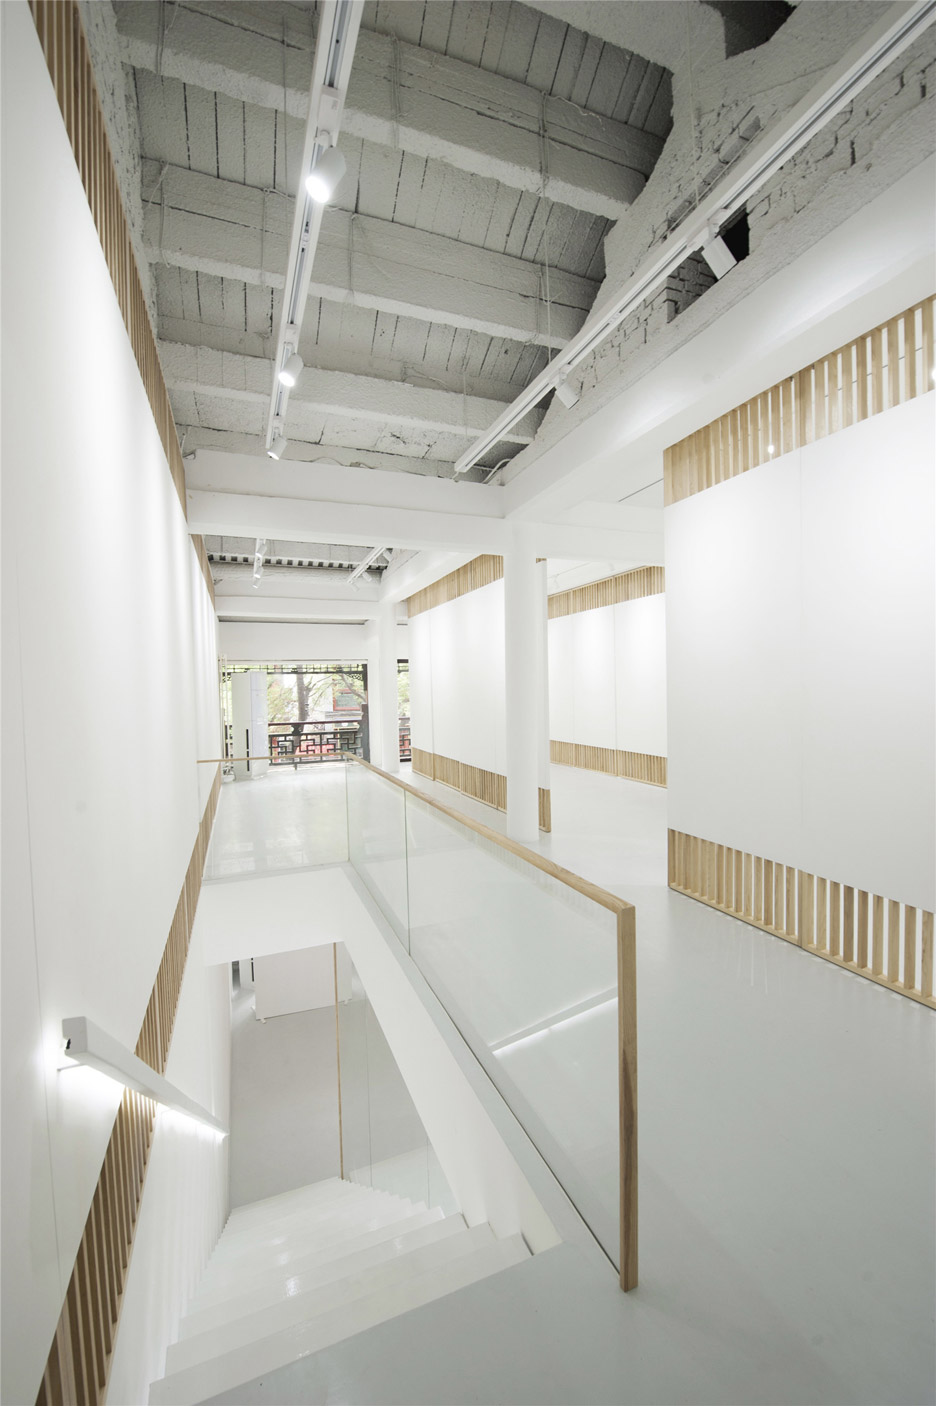 Rongbaozhai Western Art Gallery by Arch Studio